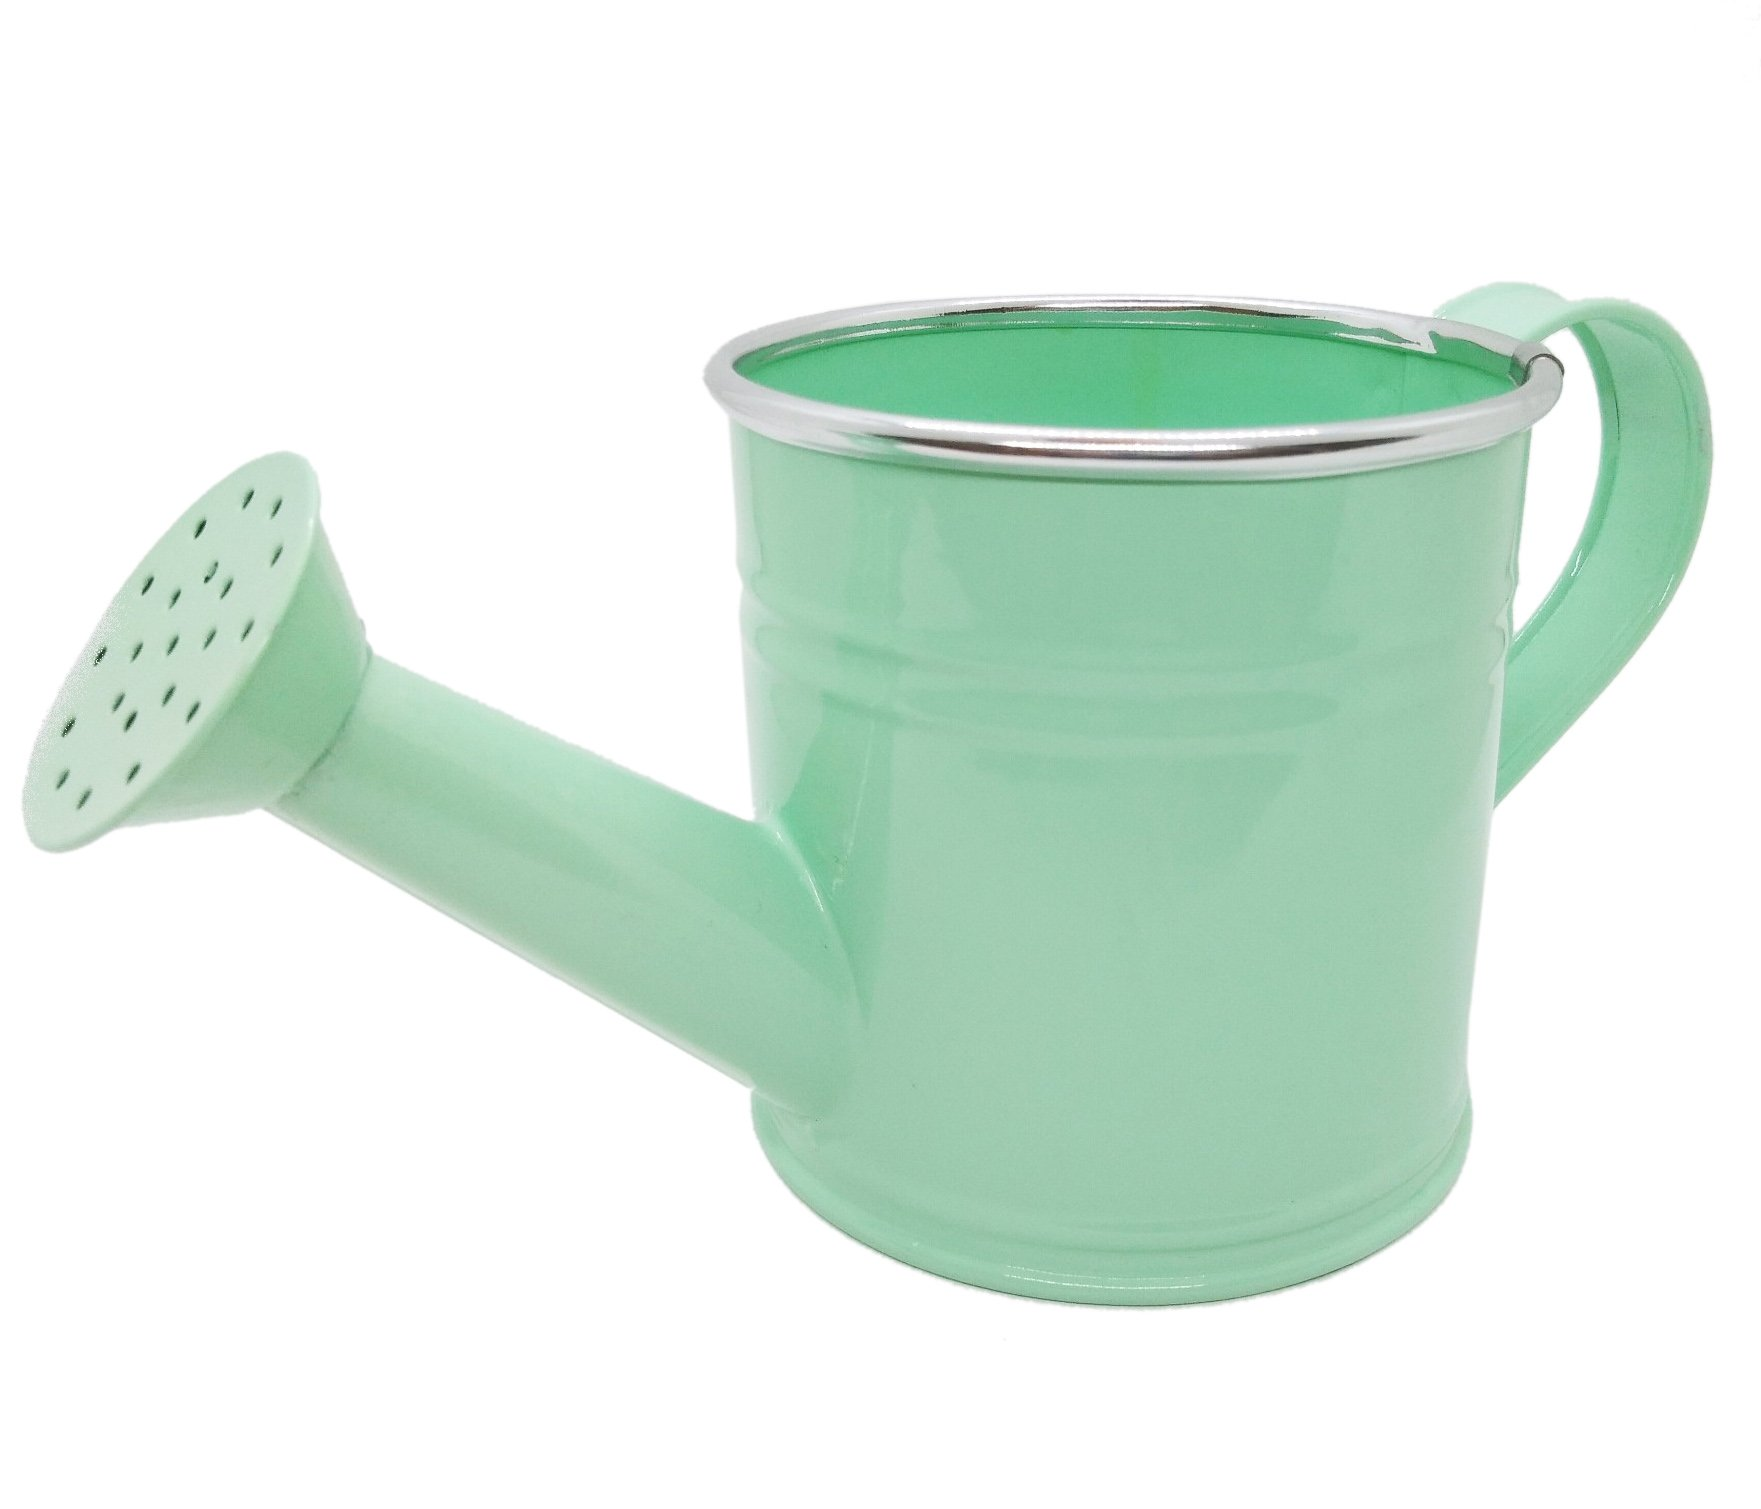 Watering Pot Vintage Style Sprinkler Nozzle Flower Garden Supply Sprayer Small Holes (Light Green, Small Size)